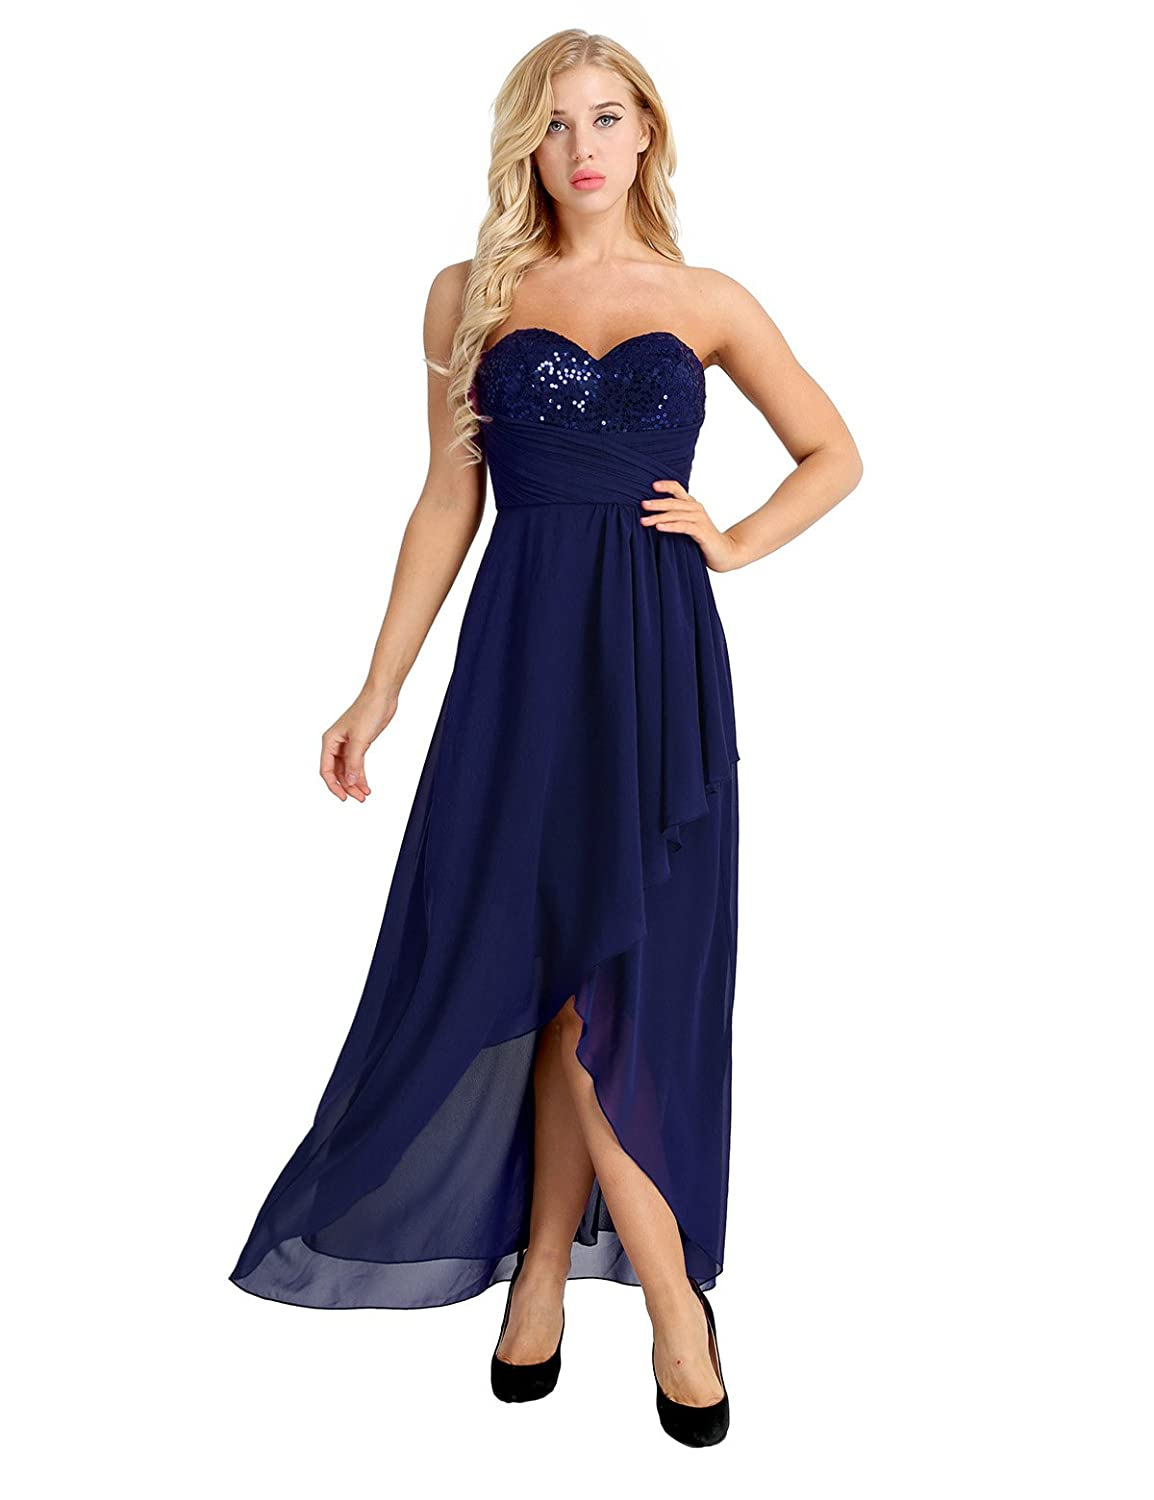 TiaoBug Women Strapless Chiffon Dress Empire Waist Bridesmaid Evening Prom Party Dresses Gowns